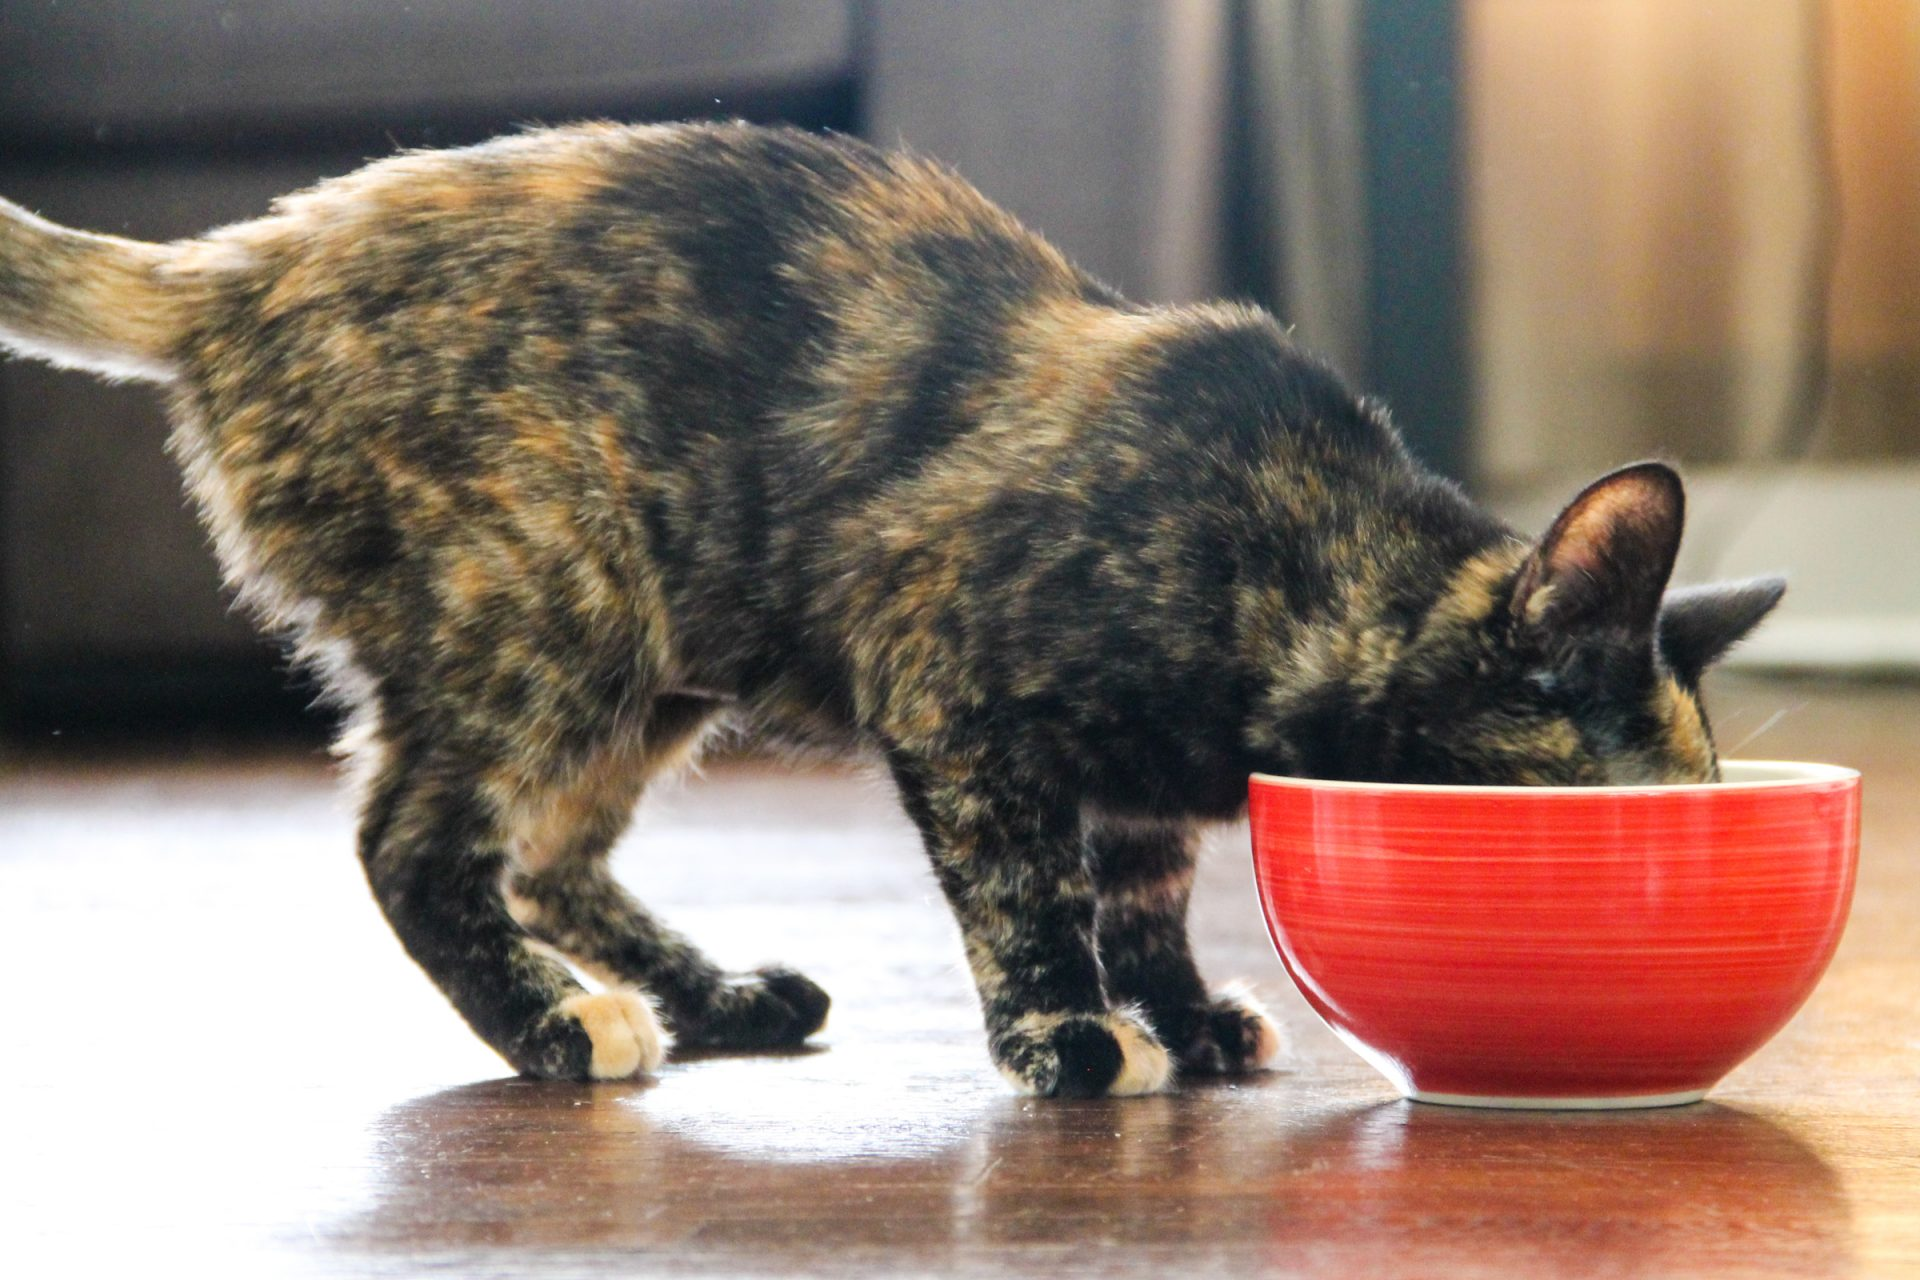 Cat Eating Out of Red Bowl